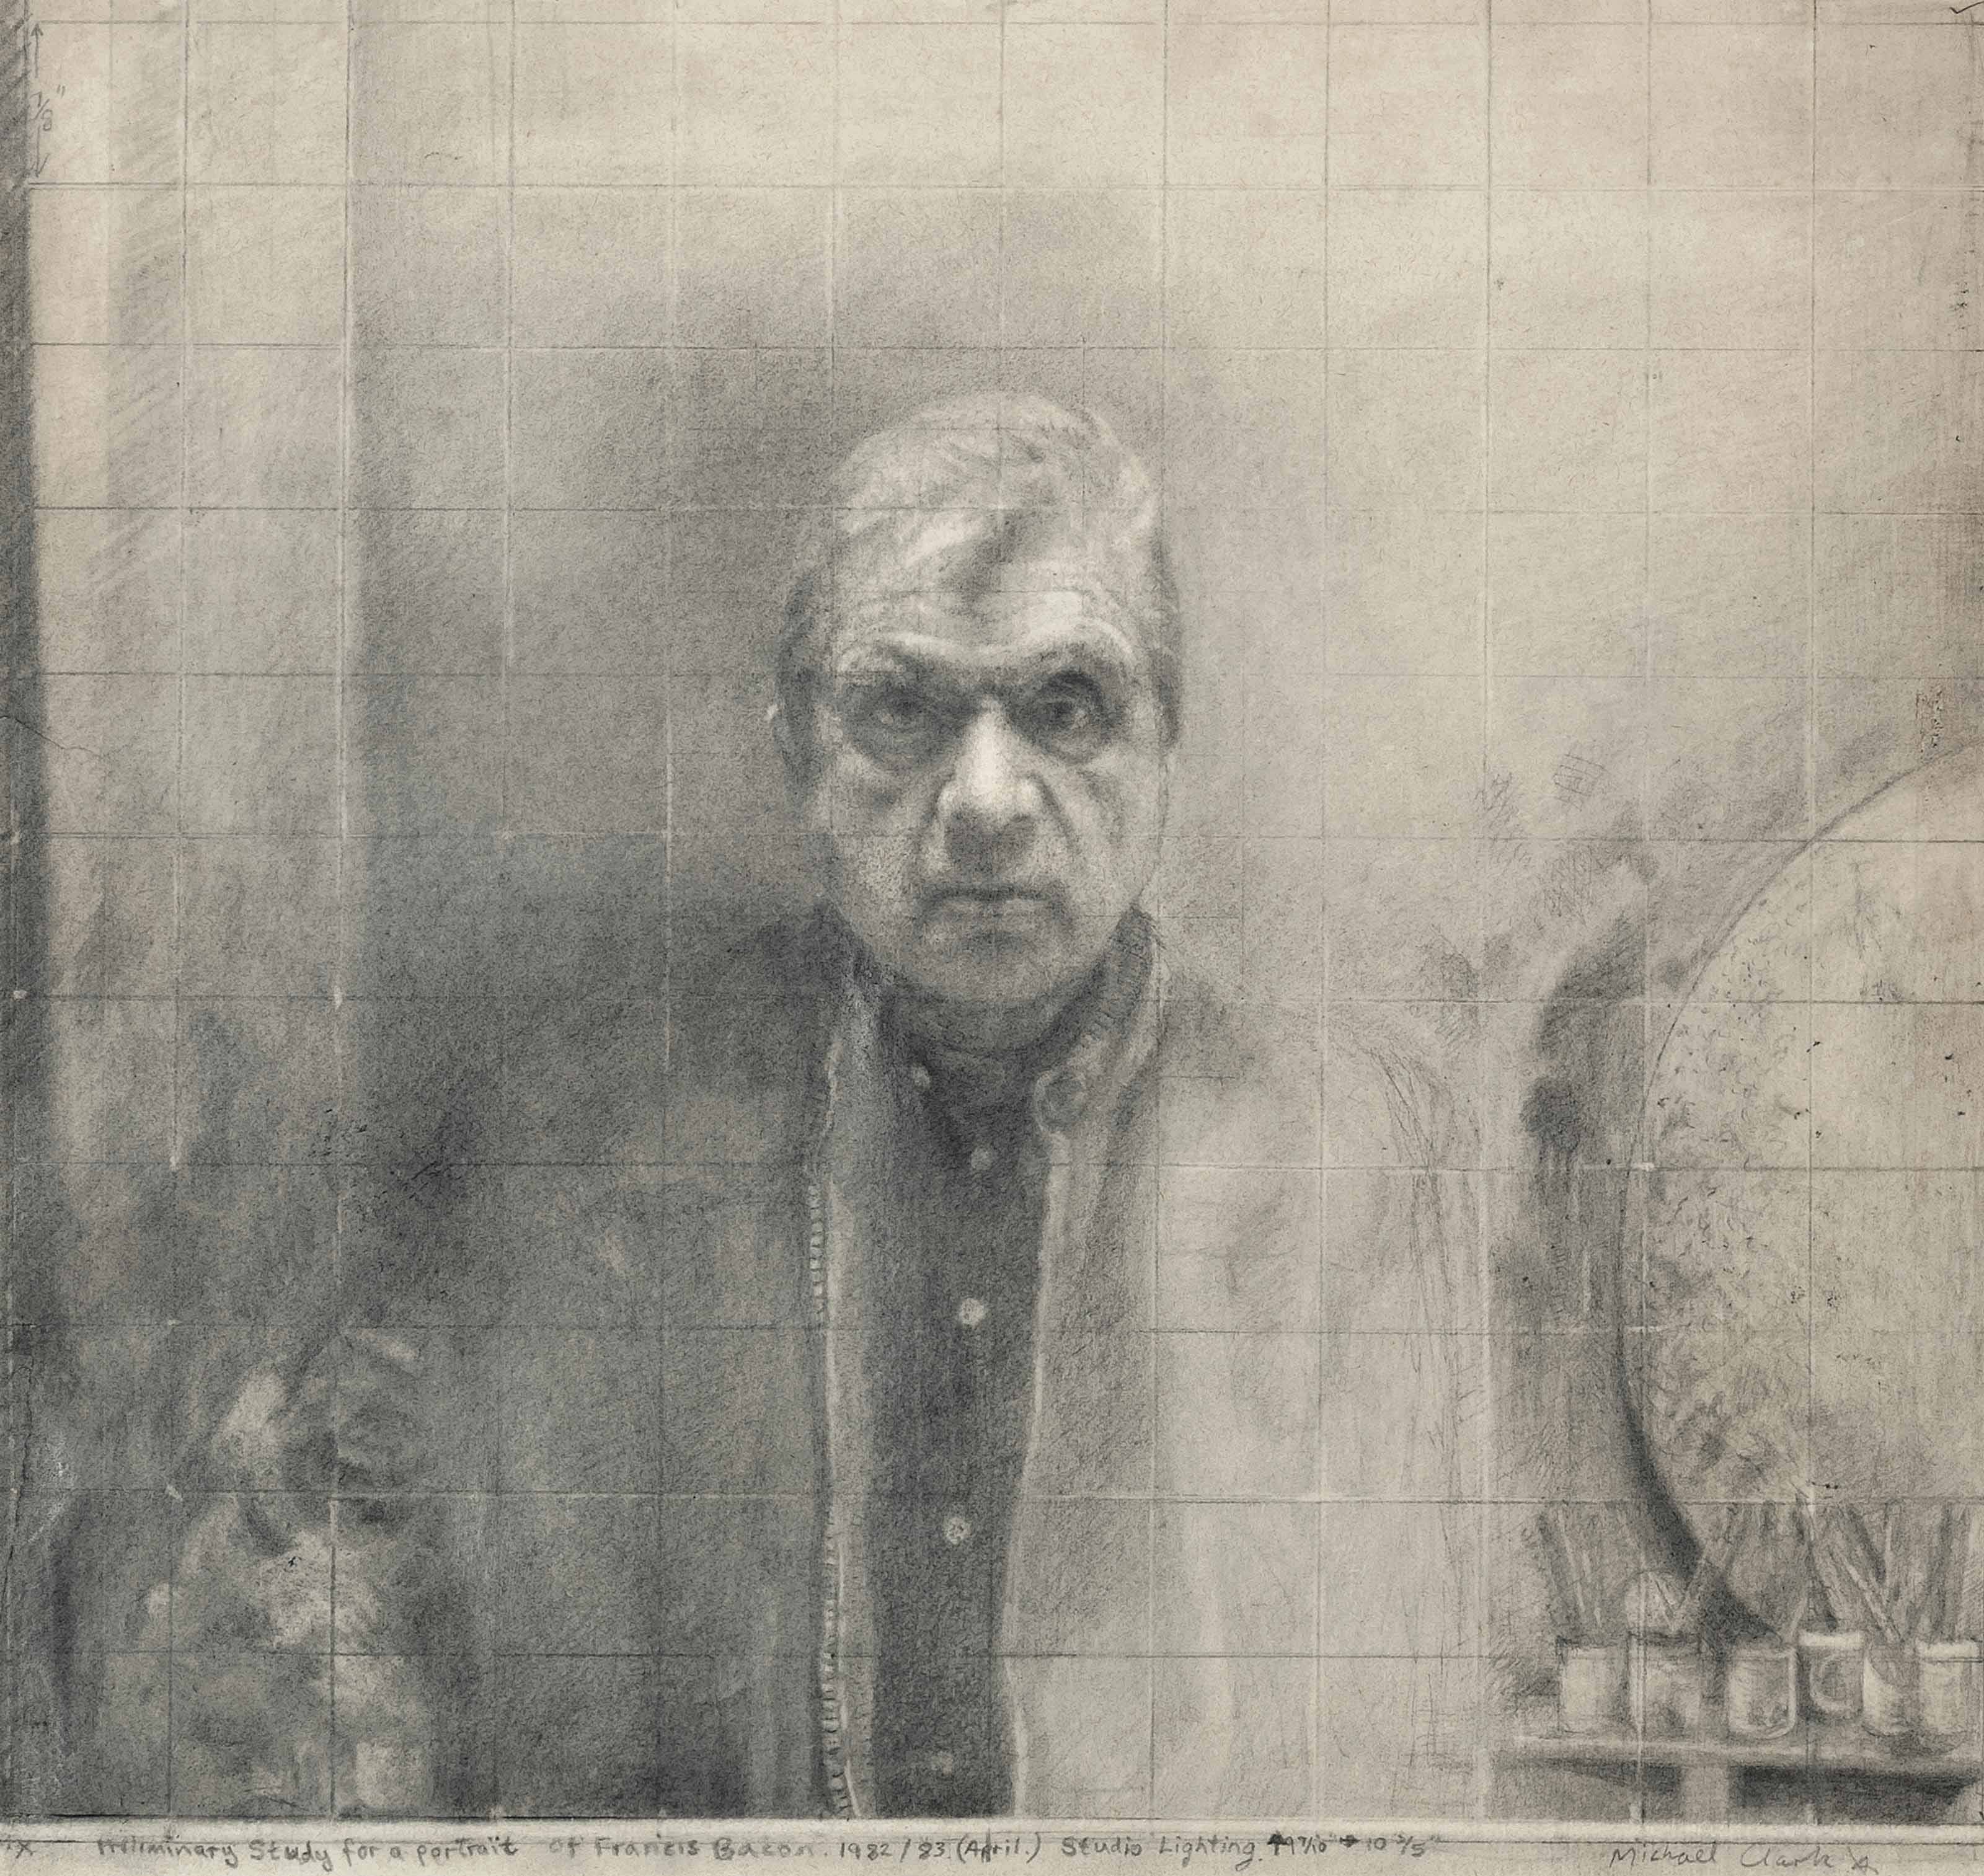 Preliminary Study for a Portrait of Francis Bacon